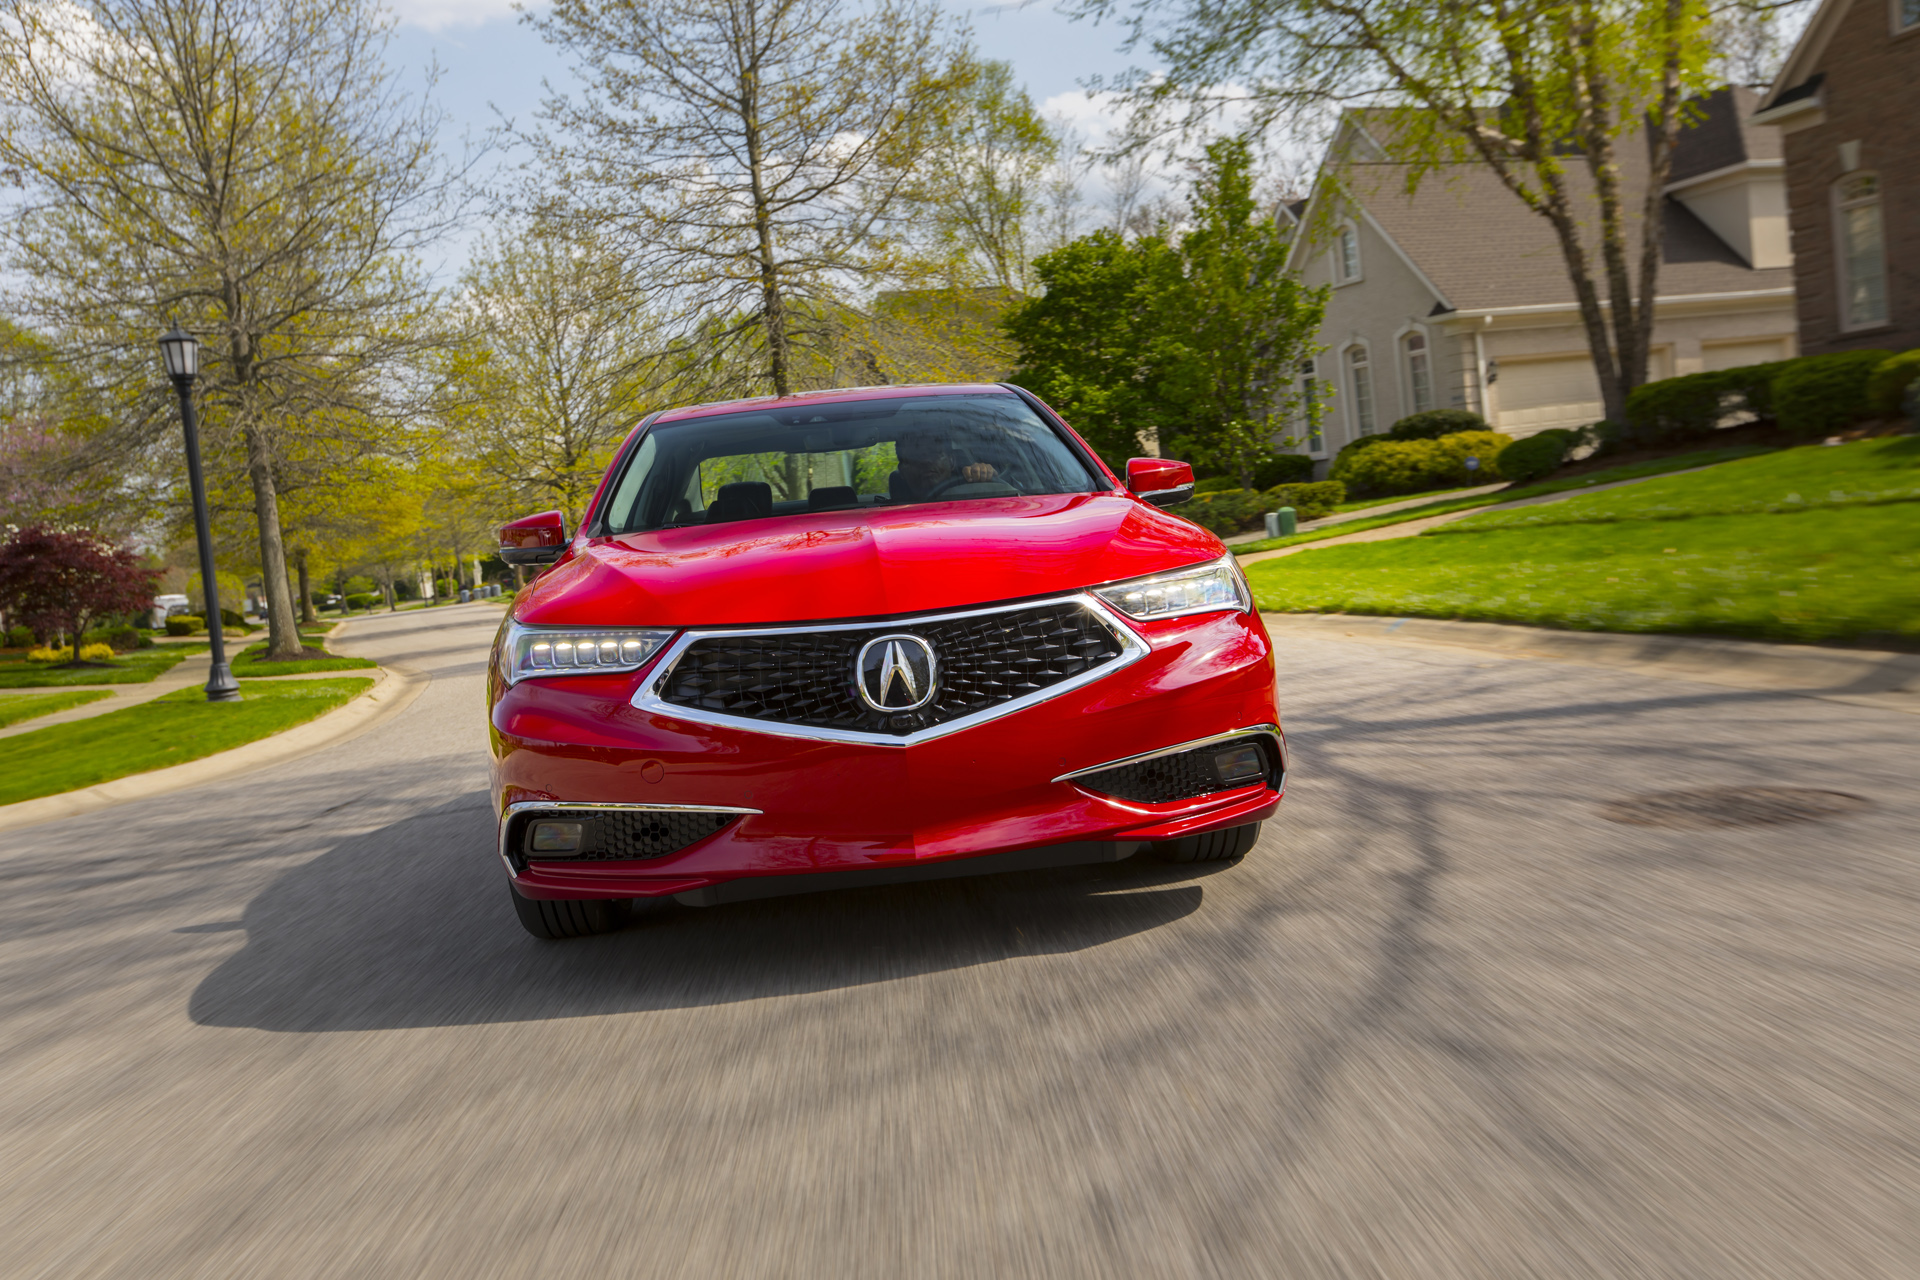 Acura Tlx Driven Mercedes X Cl Spied Toyota Flying Car Teased Today S News